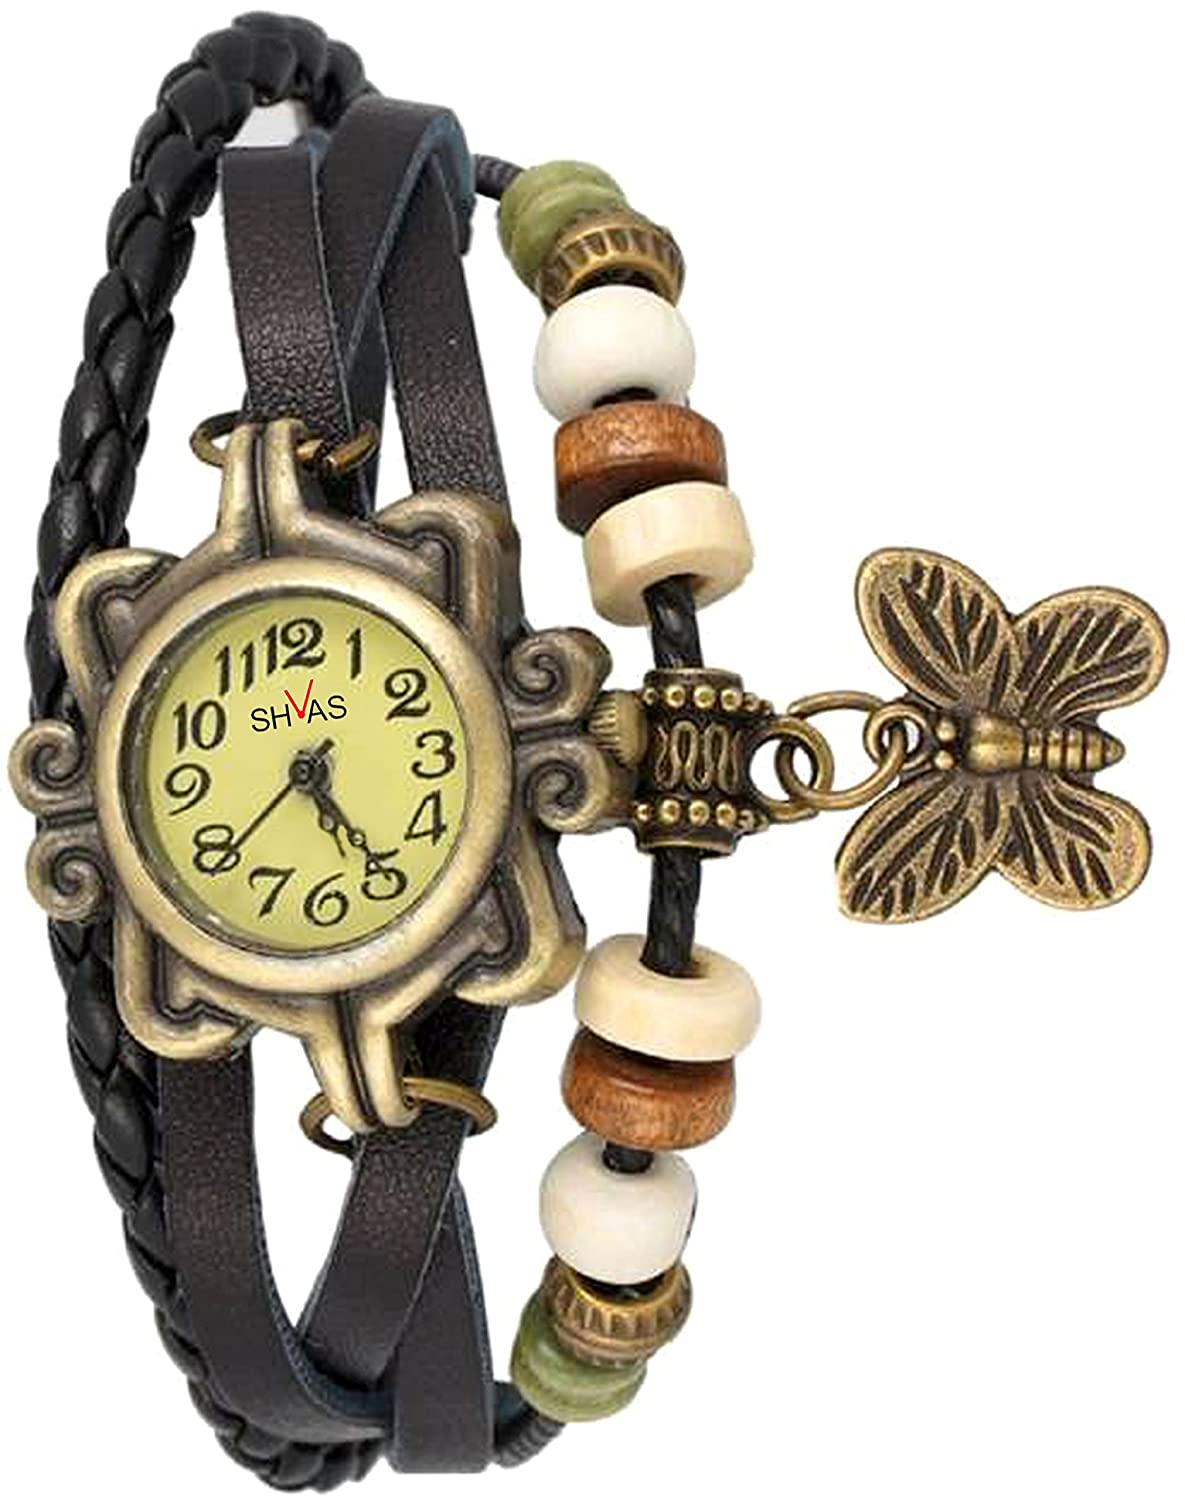 Deals on SHVAS -- Leather Bracelet Watch - Analog Display - Off White Dial - for women